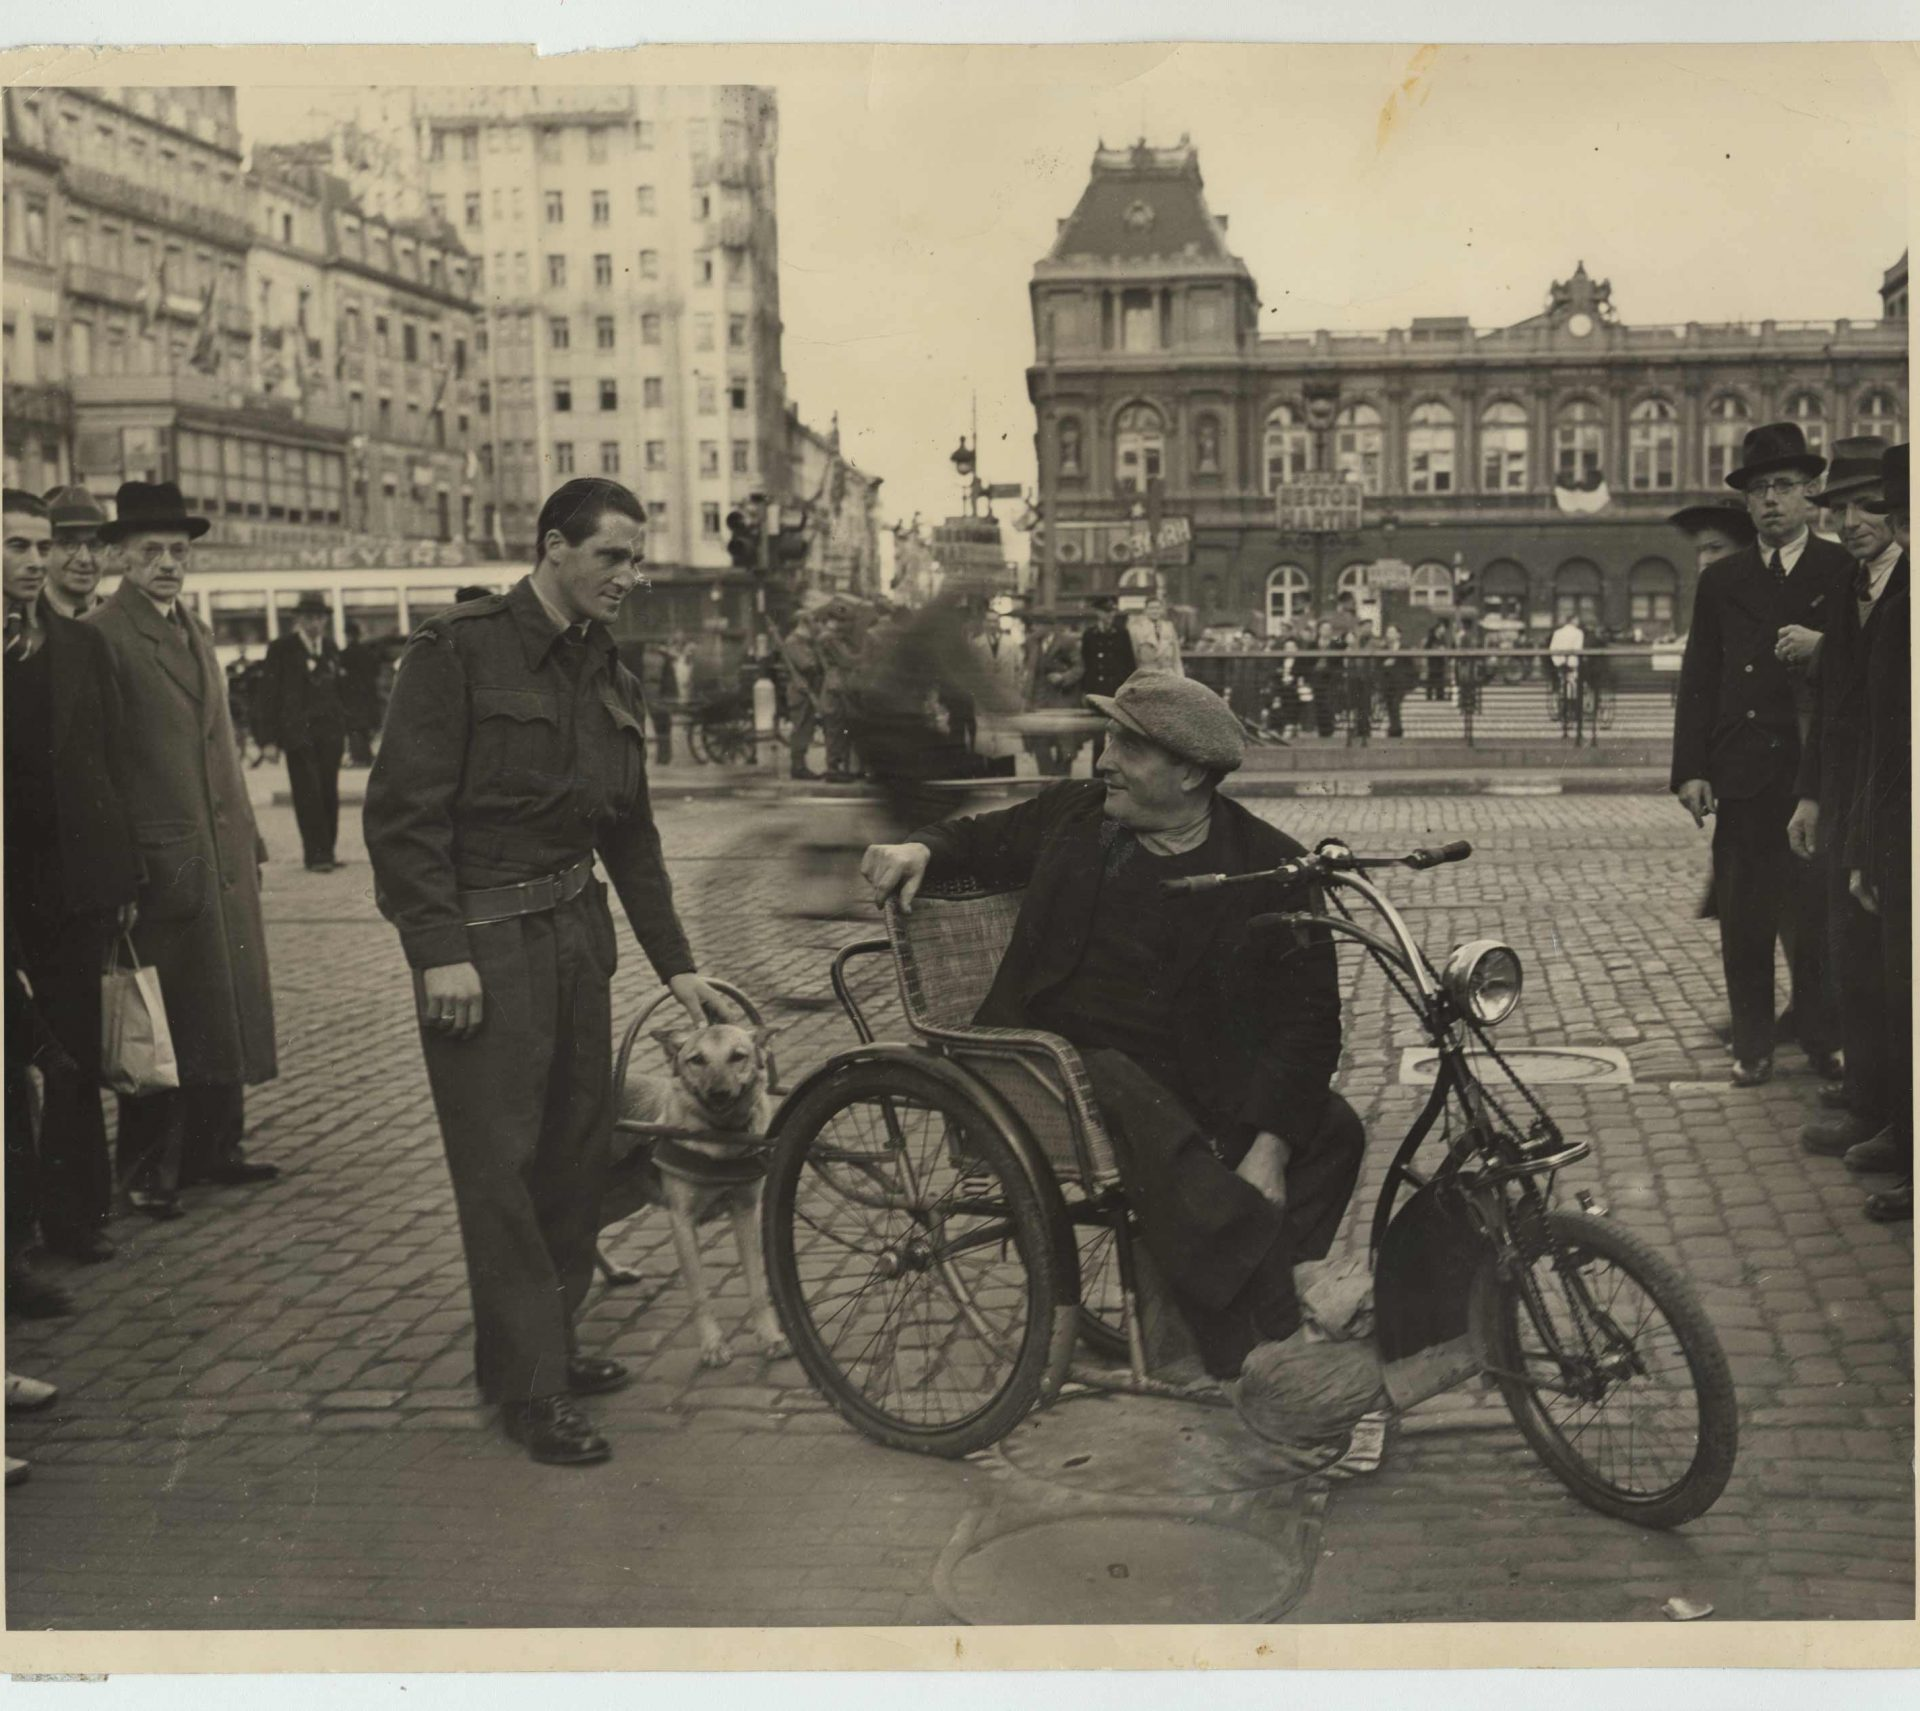 Saul Stein photographed in uniform in Brussels with a man on a tricycle in 1945.